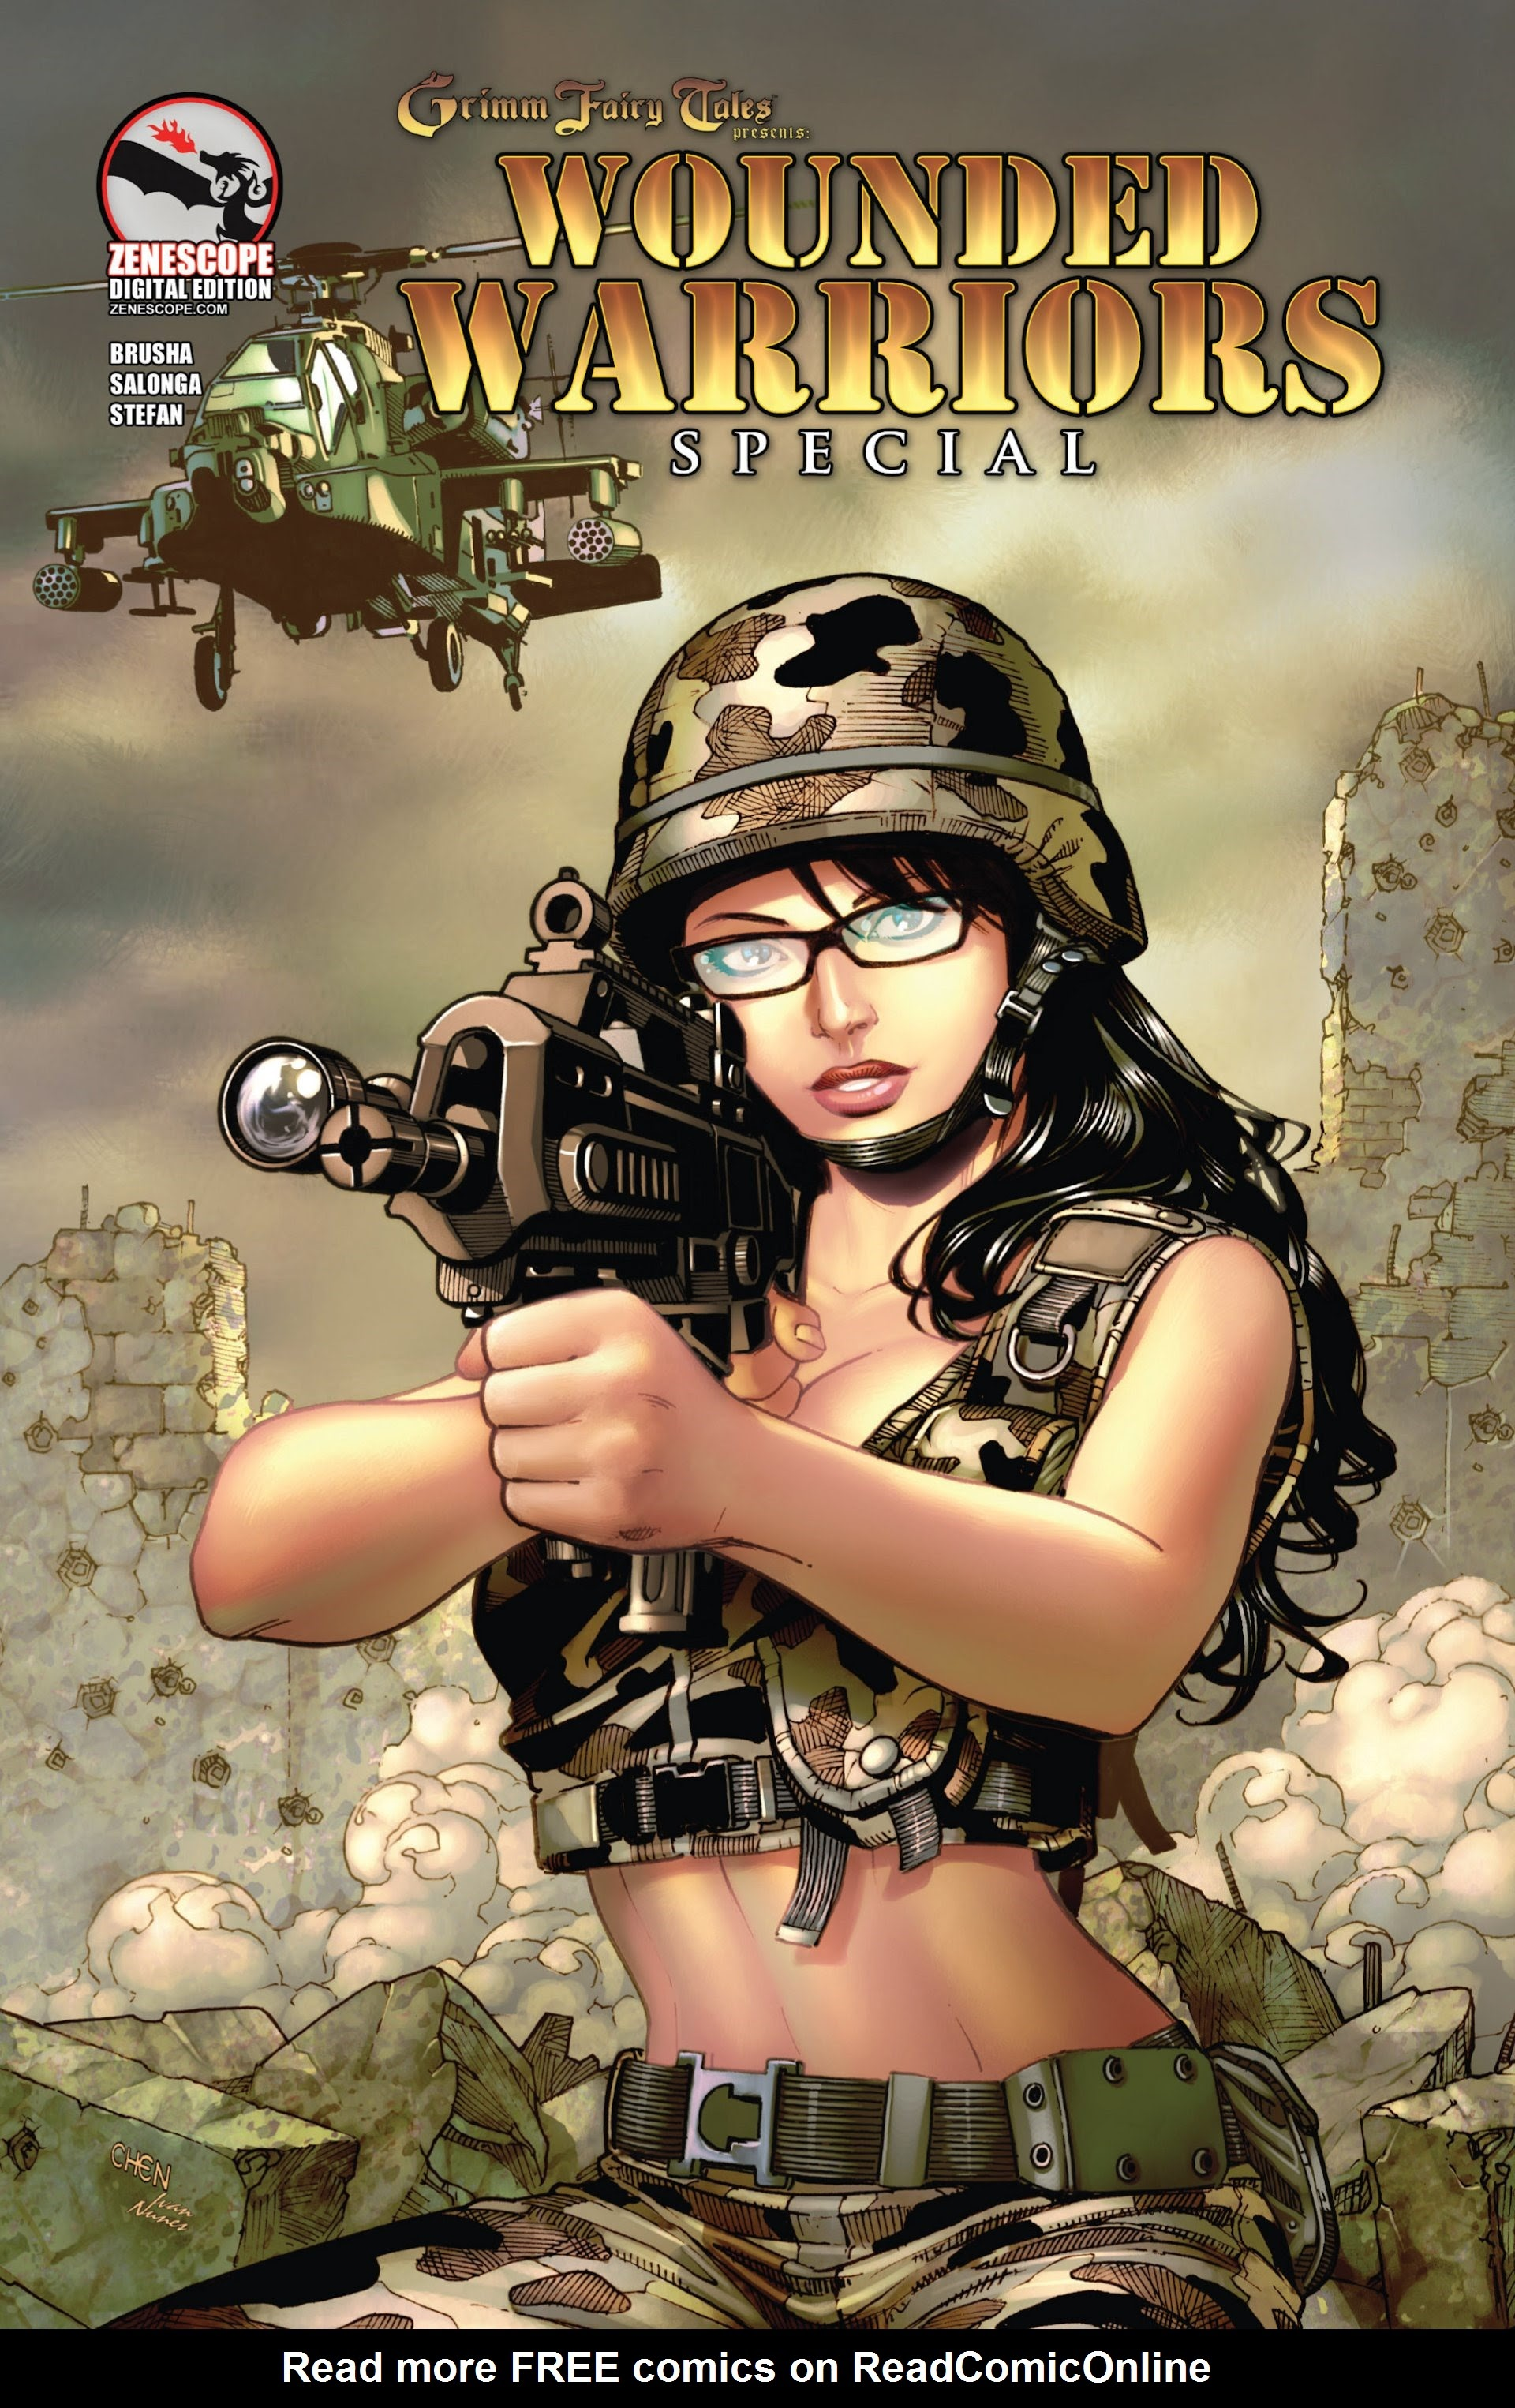 Grimm Fairy Tales presents Wounded Warriors Special Full Page 1